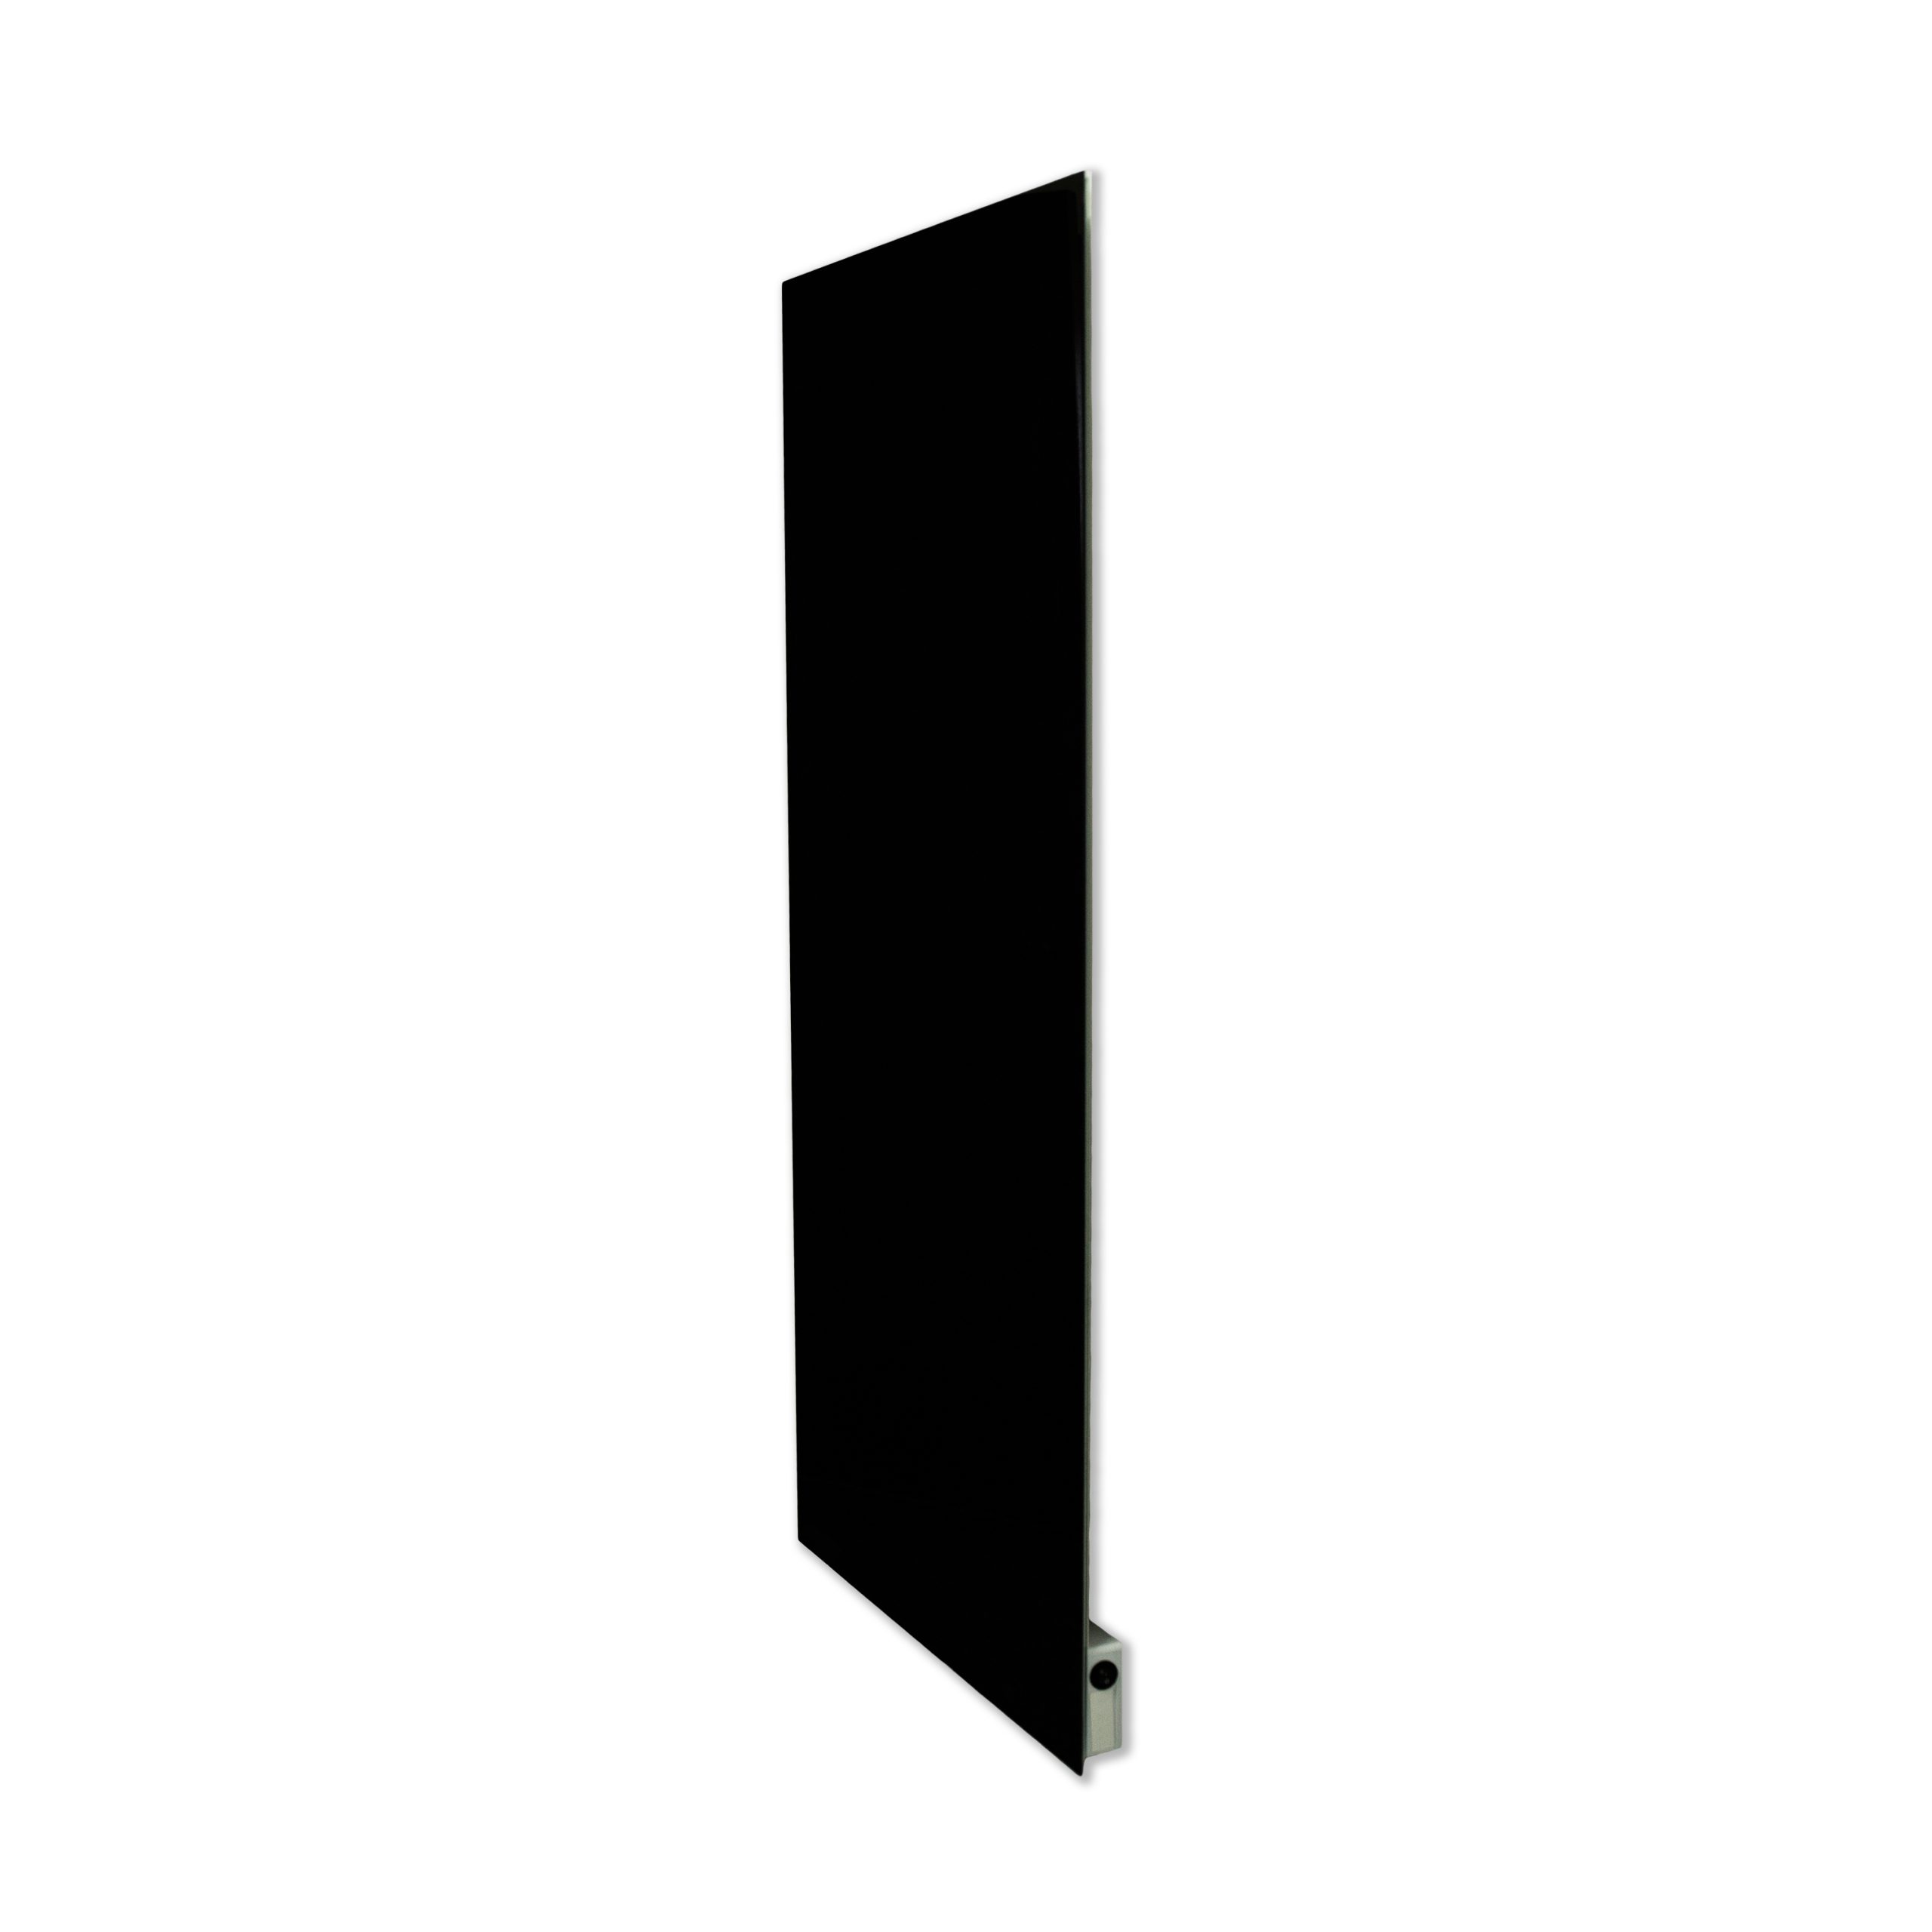 SI Series Glass Far Infrared Panel - Solid Colour Black